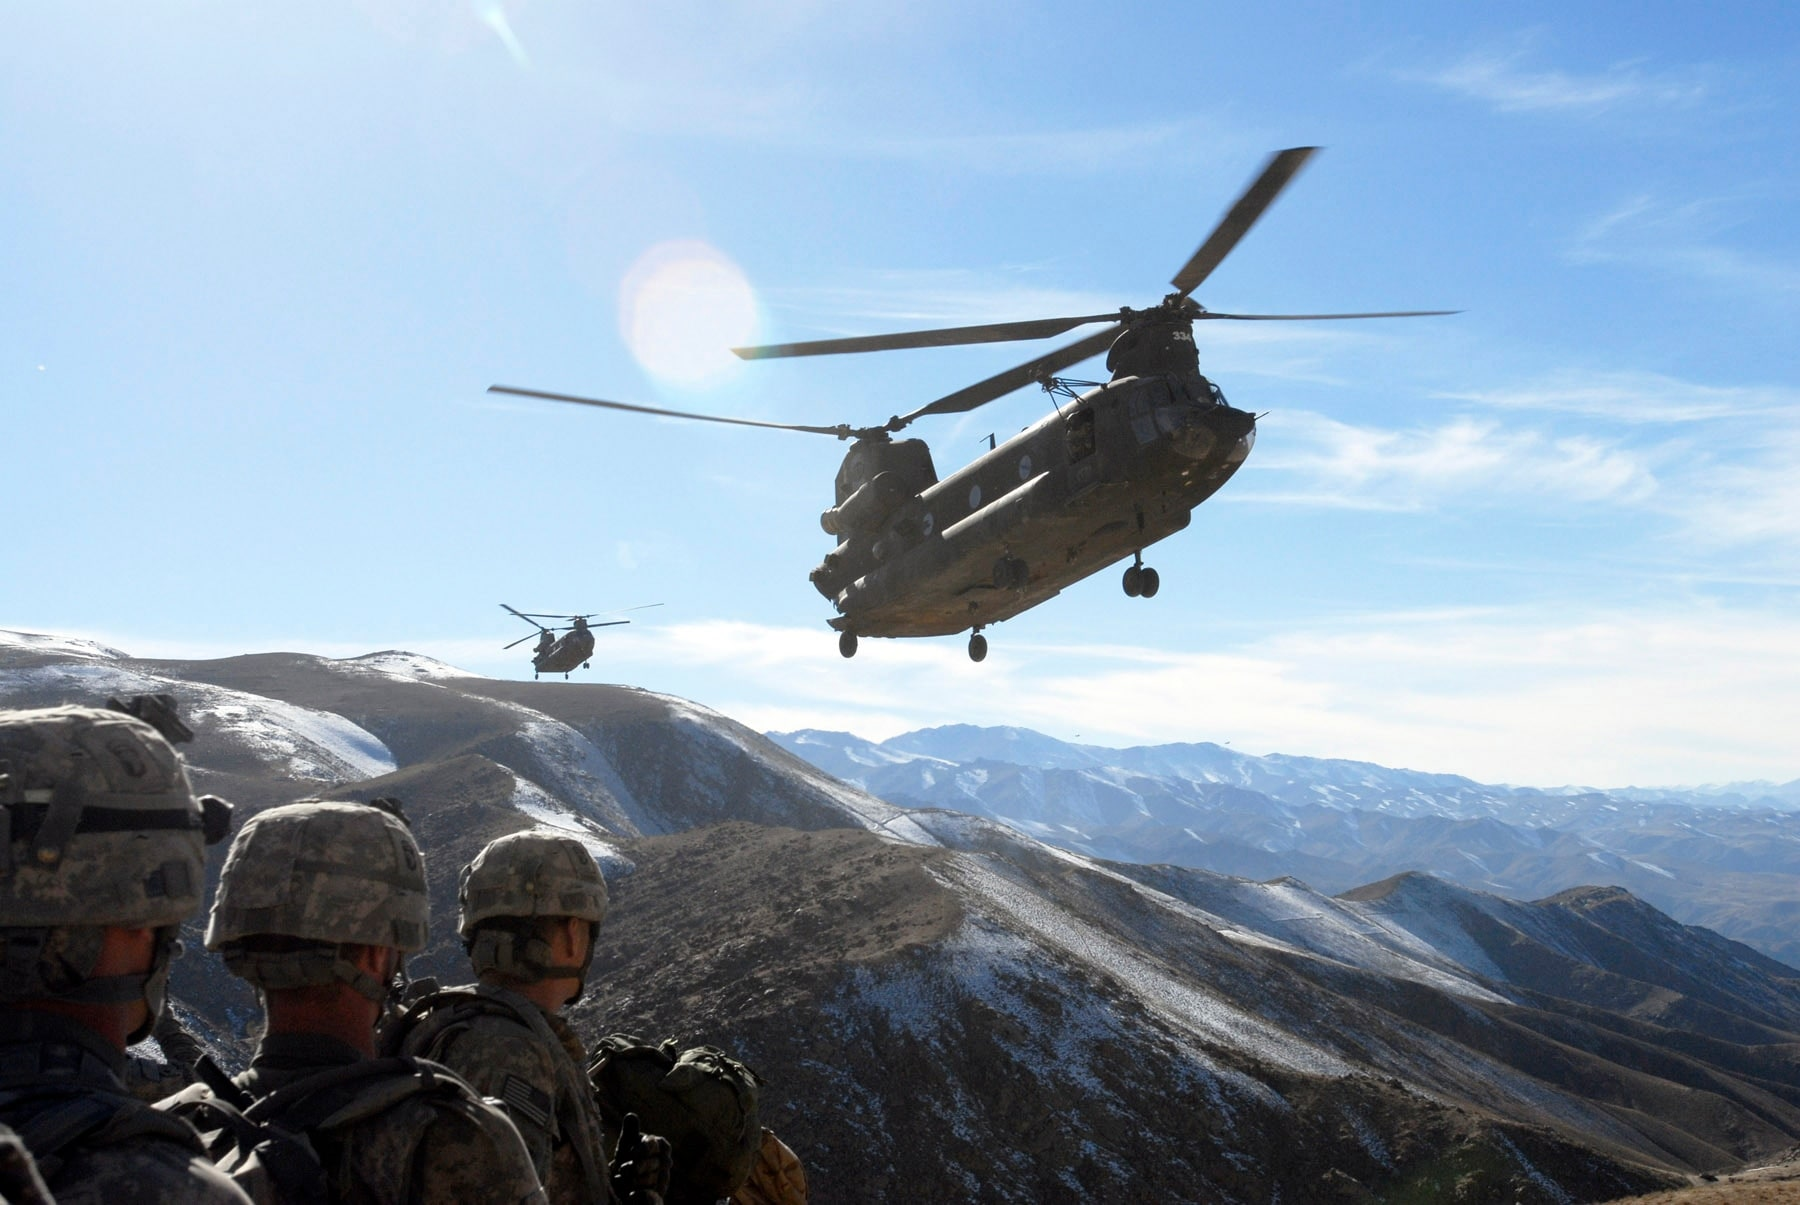 Standing by on a hill top, Soldiers with the 101st Division Special Troops Battalion, 101st Airborne Division watch as two Chinook helicopters fly in to take them back to Bagram Air Field, Afghanistan Nov. 4, 2008.  The Soldiers searched a small village in the valley below for IED making materials and facilities. (Photo by Spc. Mary L. Gonzalez, CJTF-101 Public Affairs)